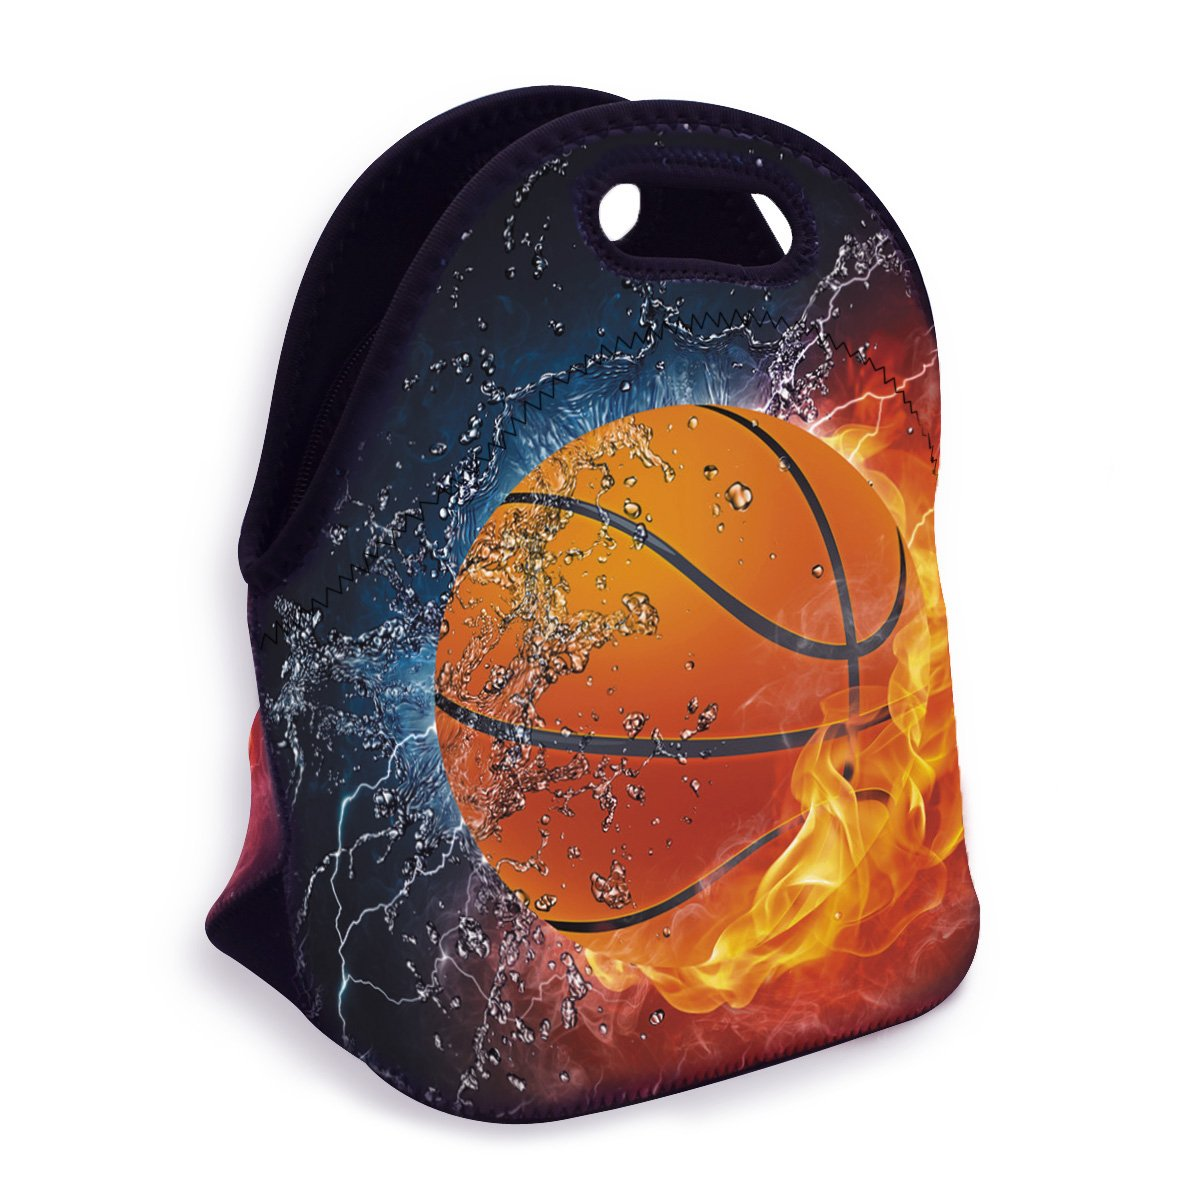 VIPbuy Water-resistant Neoprene Thermal Insulated Lunch Box Bag Tote Zippered for Men Kids Boys School Work Outdoor, Basketball Fan Novelty Gift